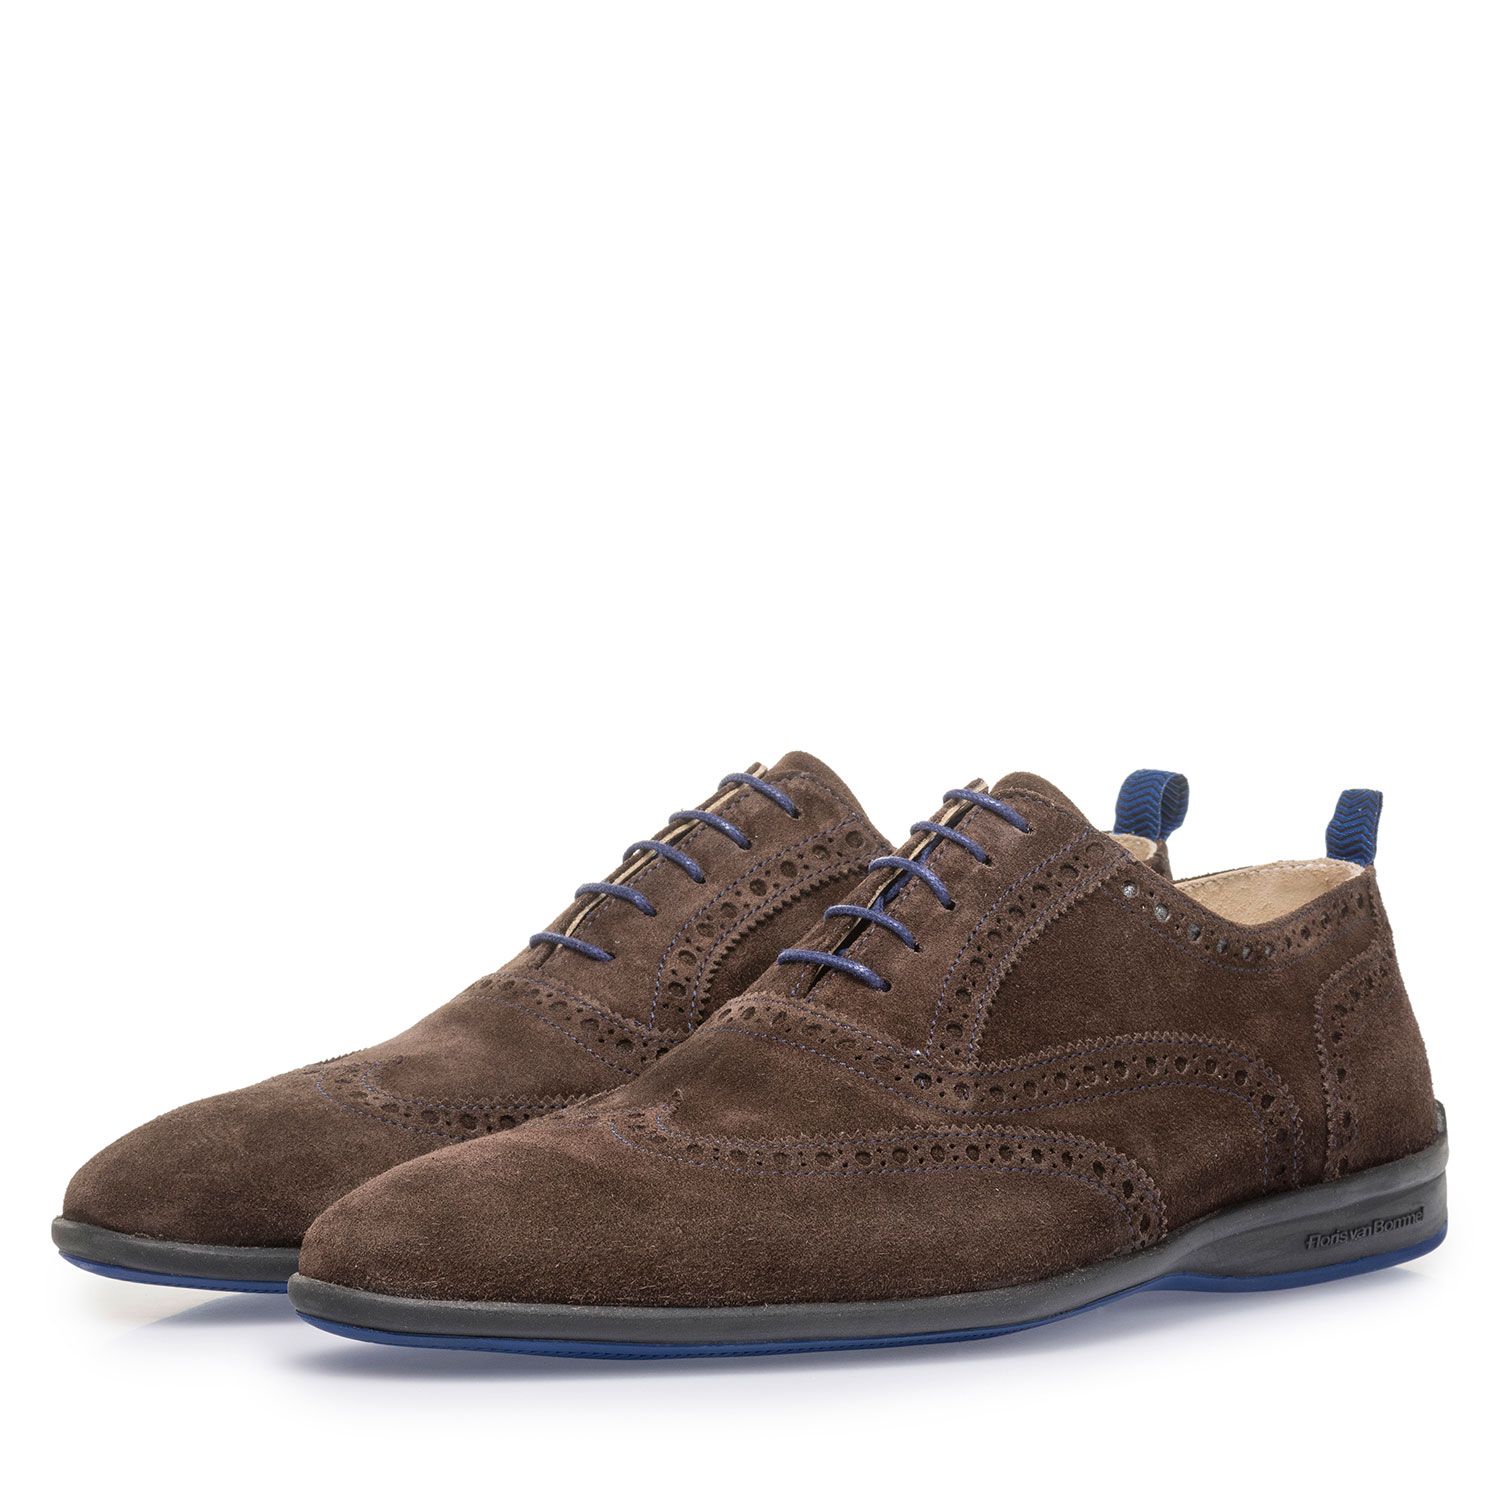 16360/08 - Brown suede leather lace shoe